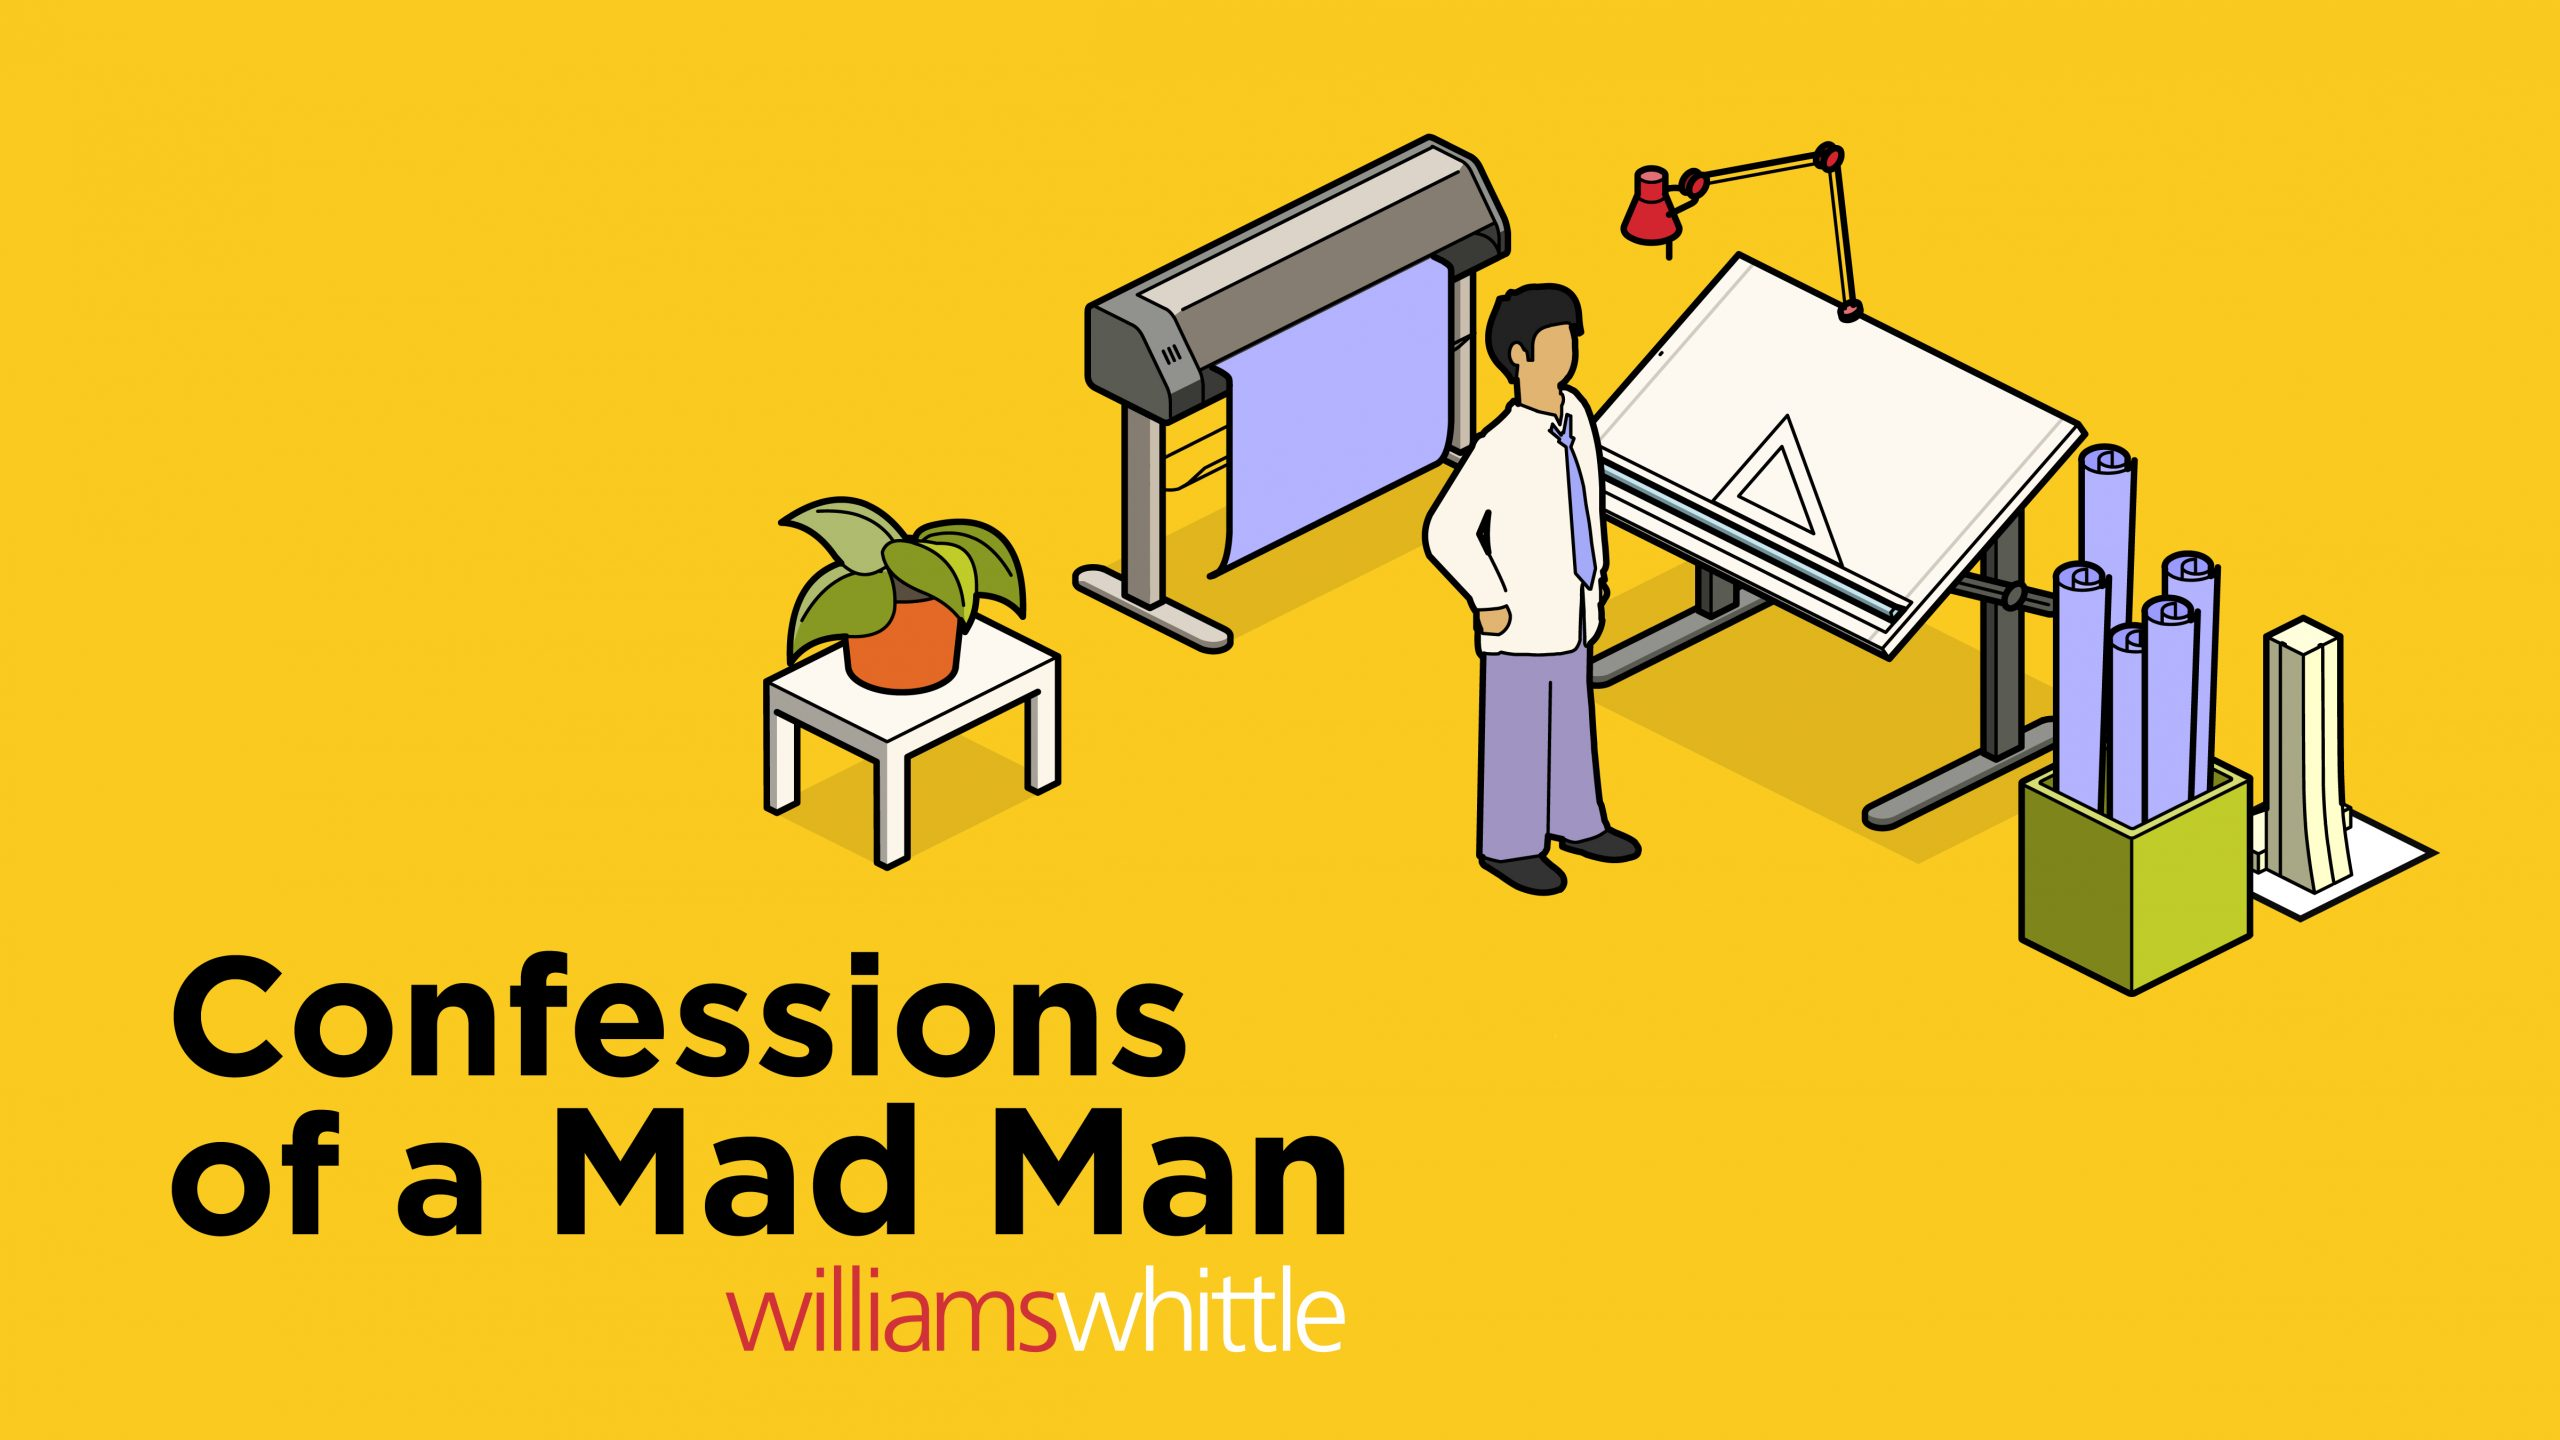 Confessions of a mad man blog image